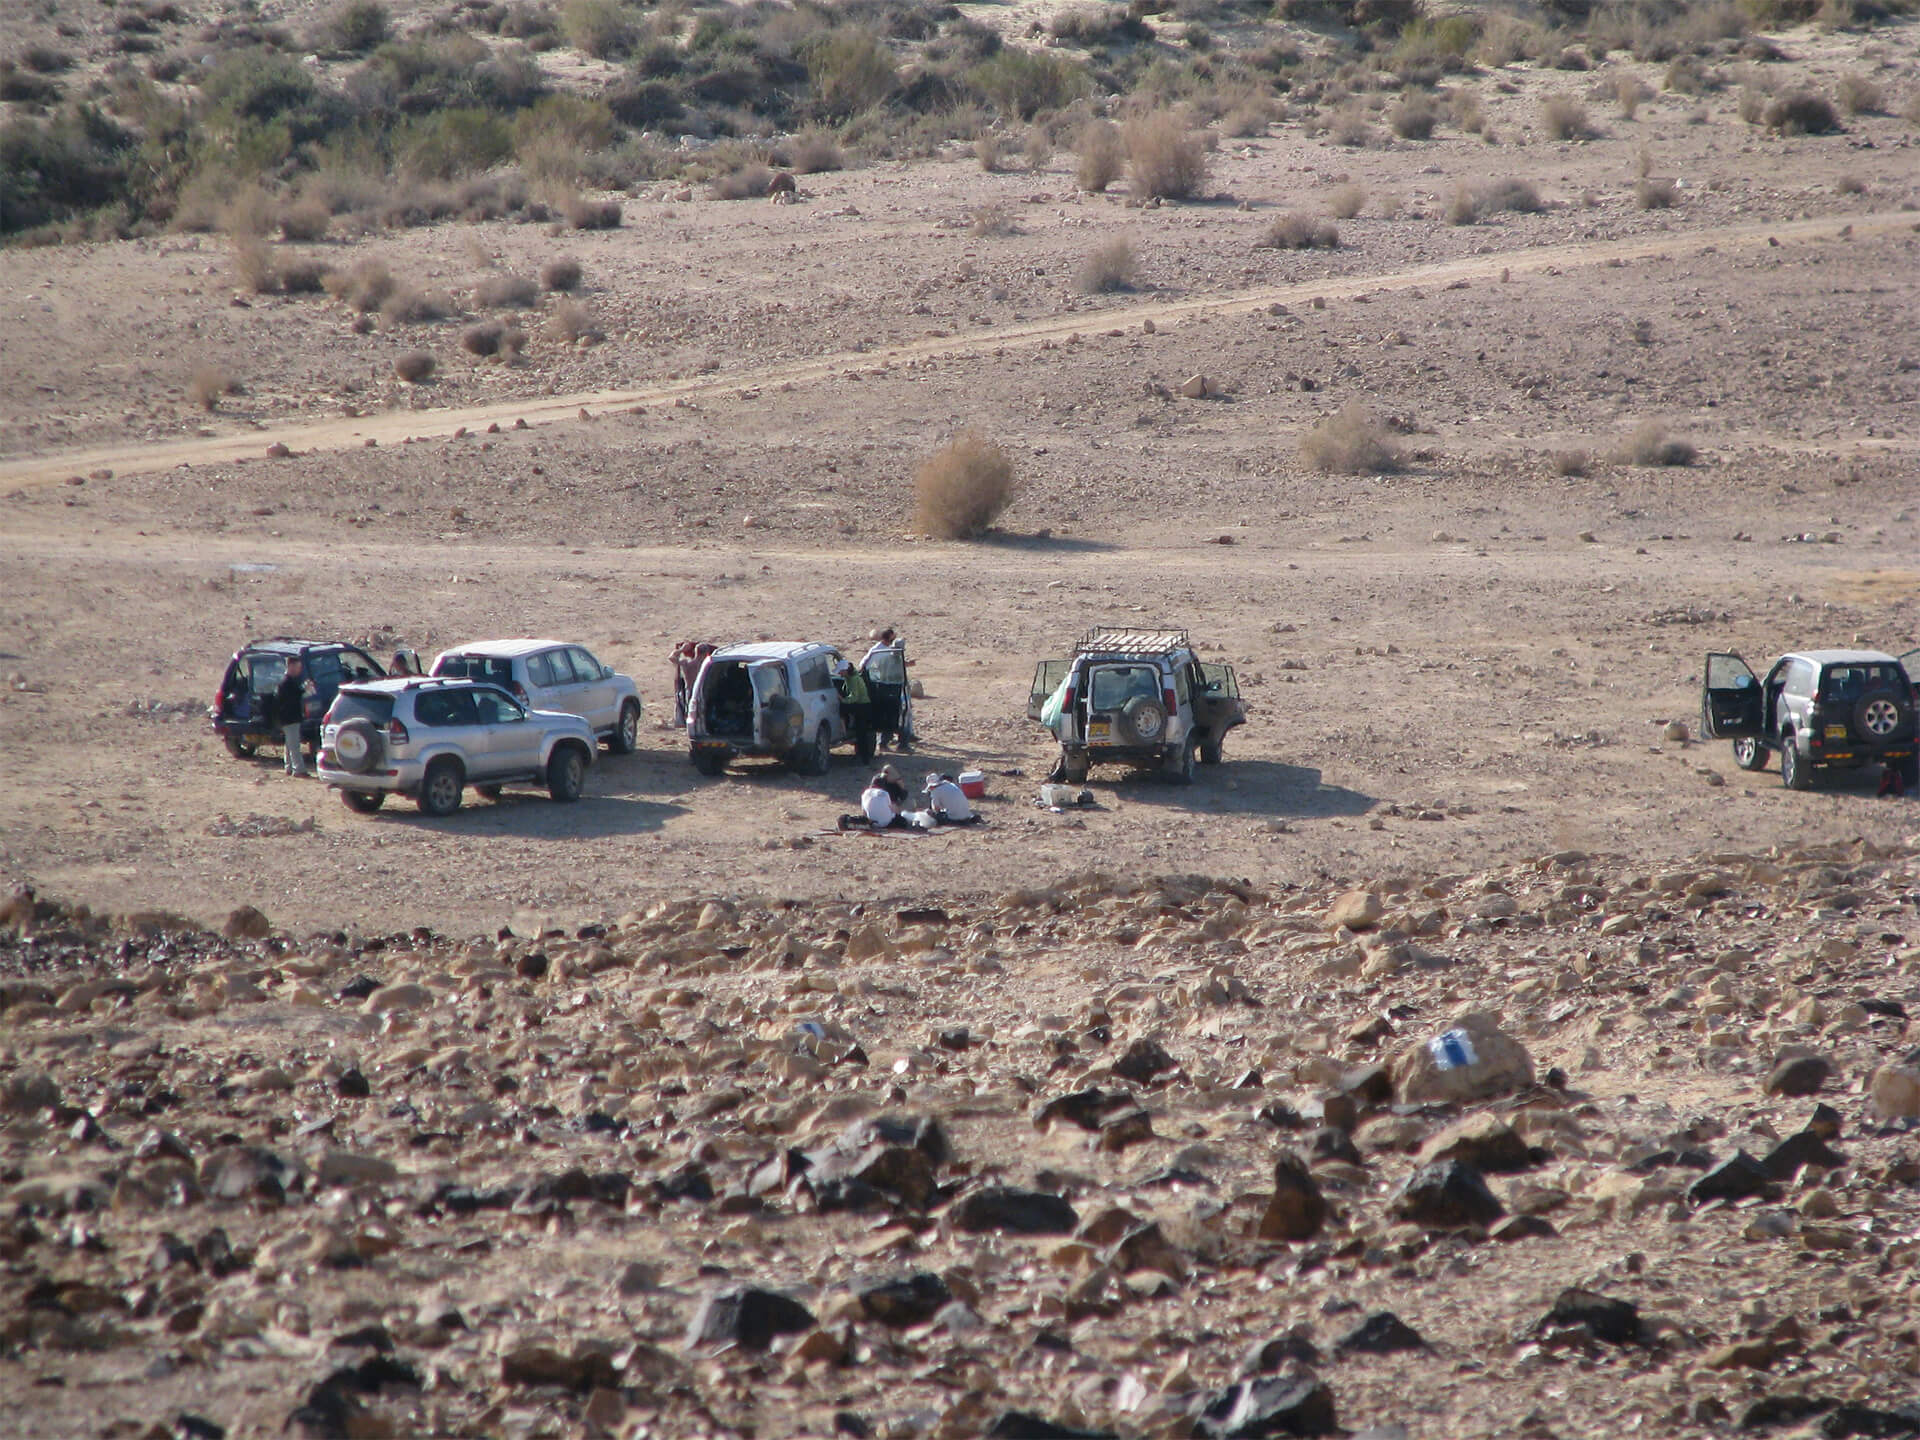 Off Road in the Negev Desert